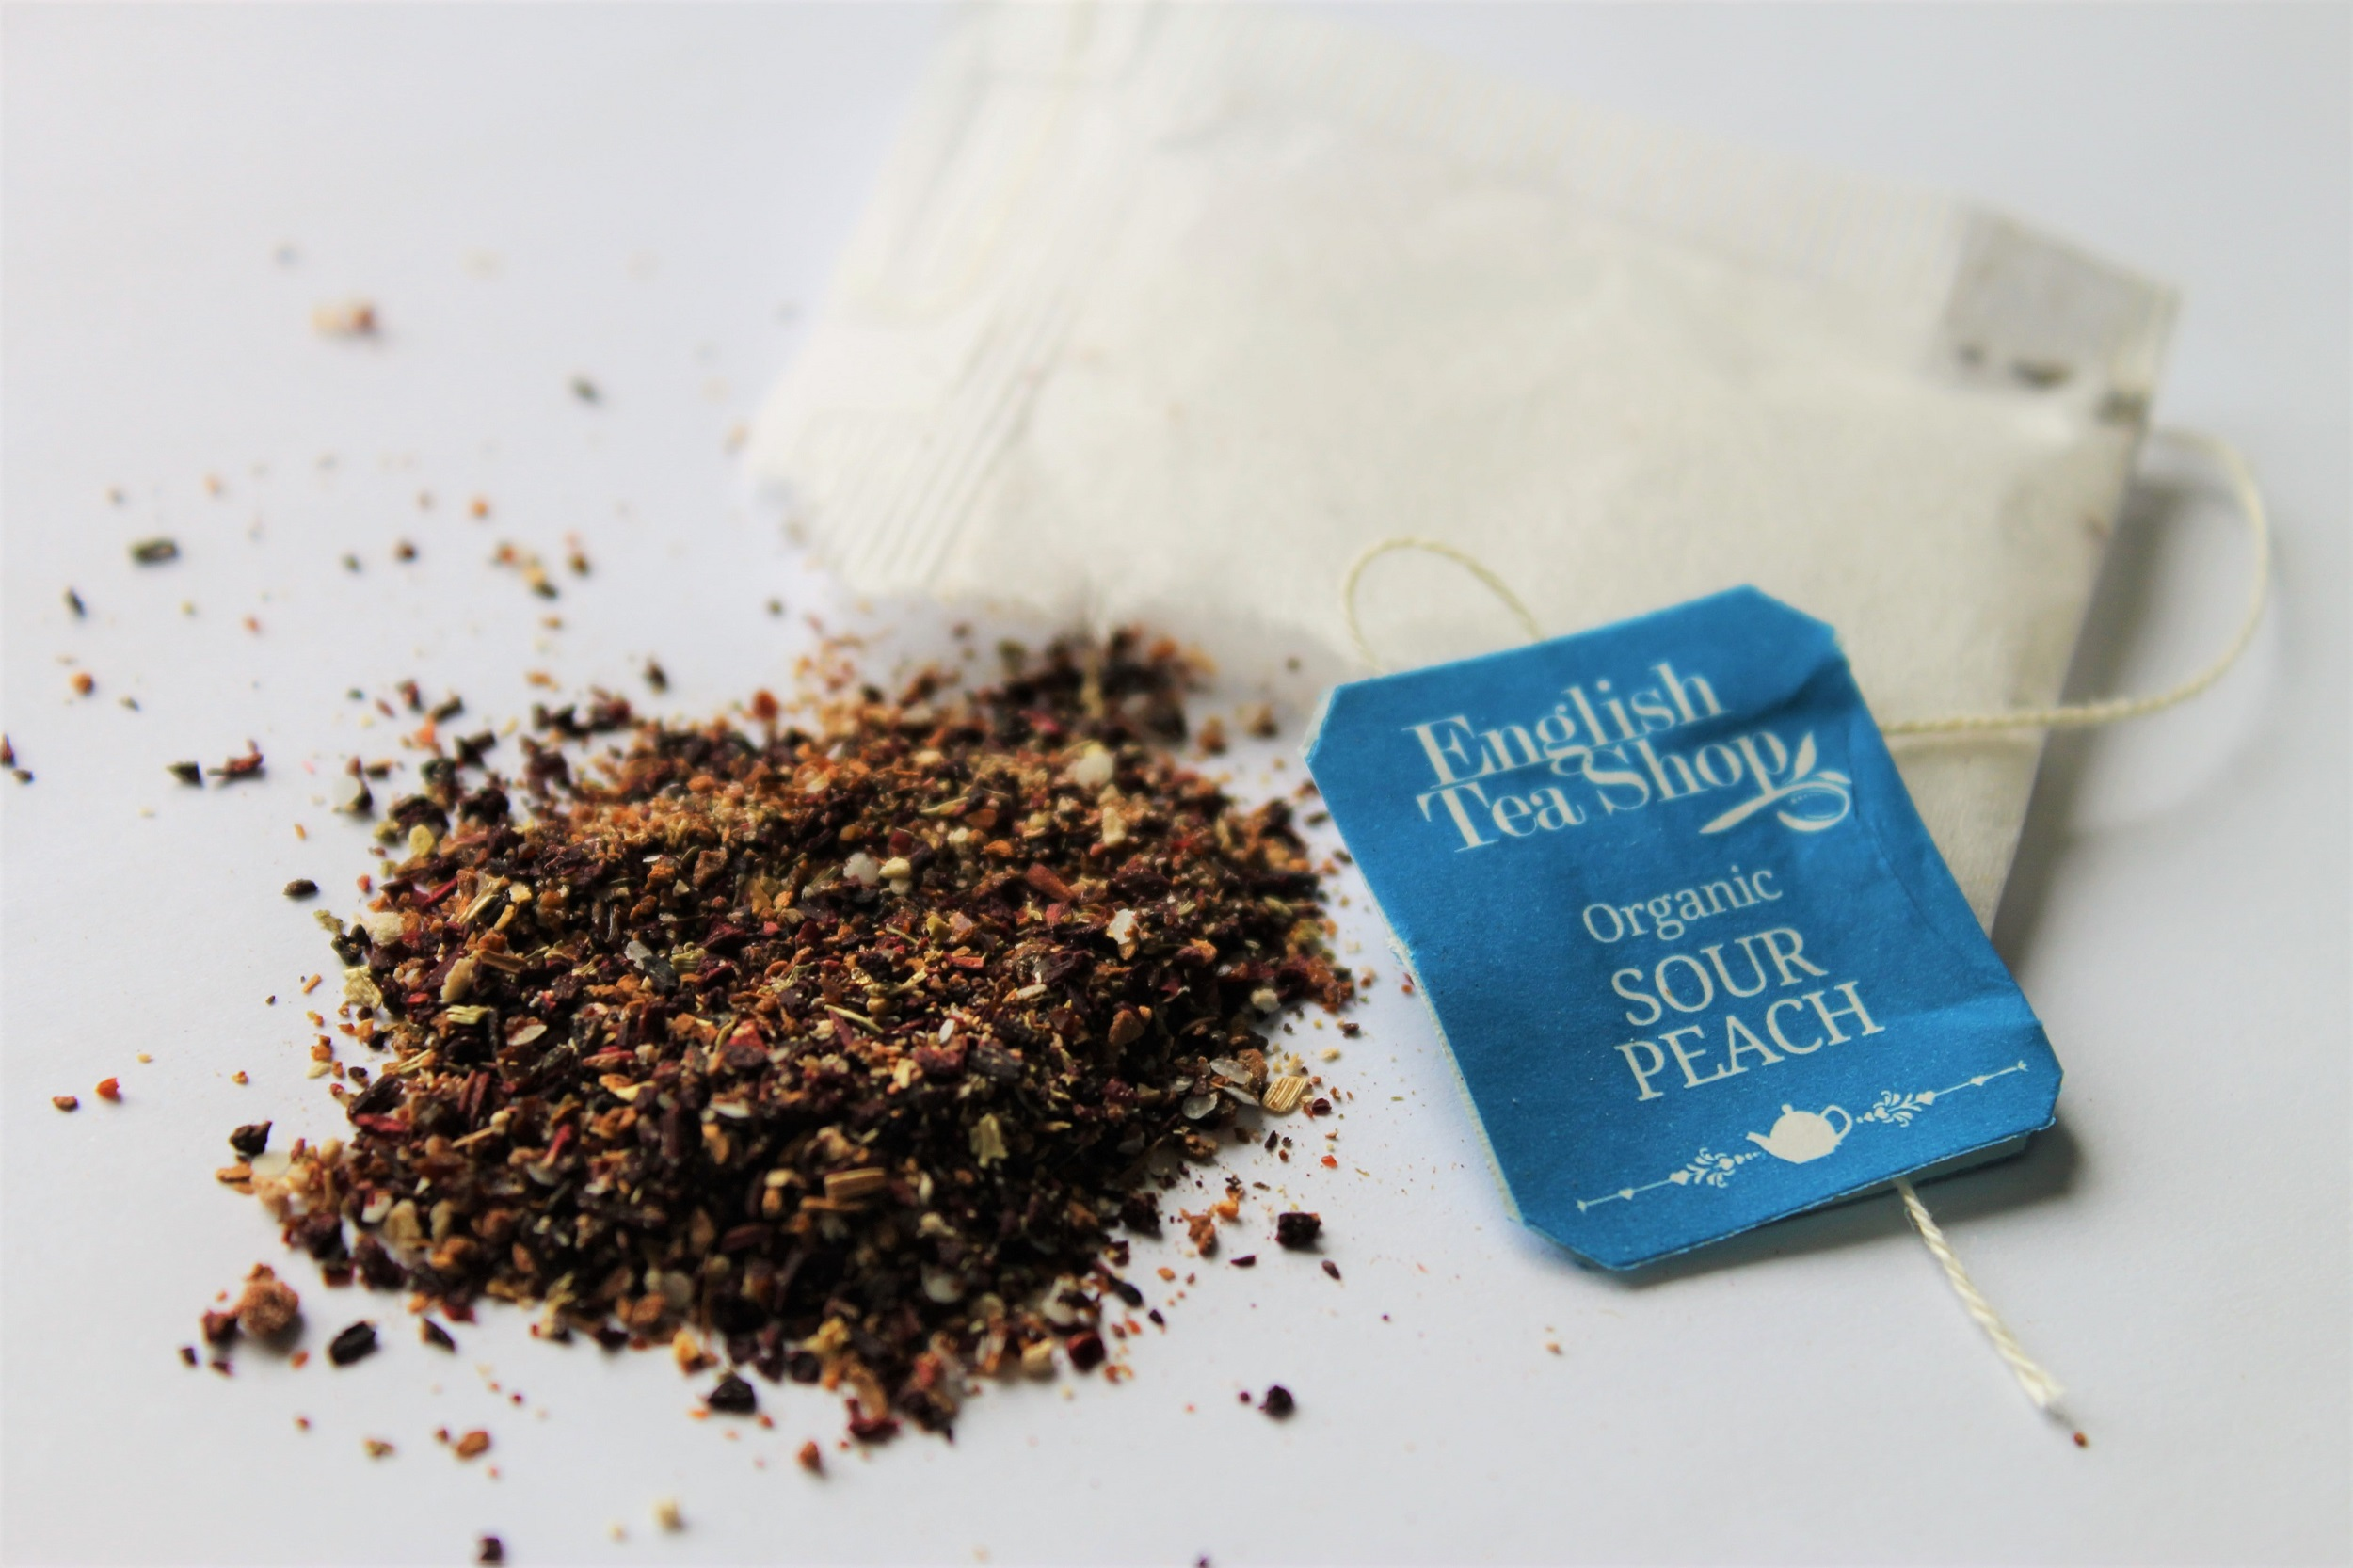 herbal peach tea bag